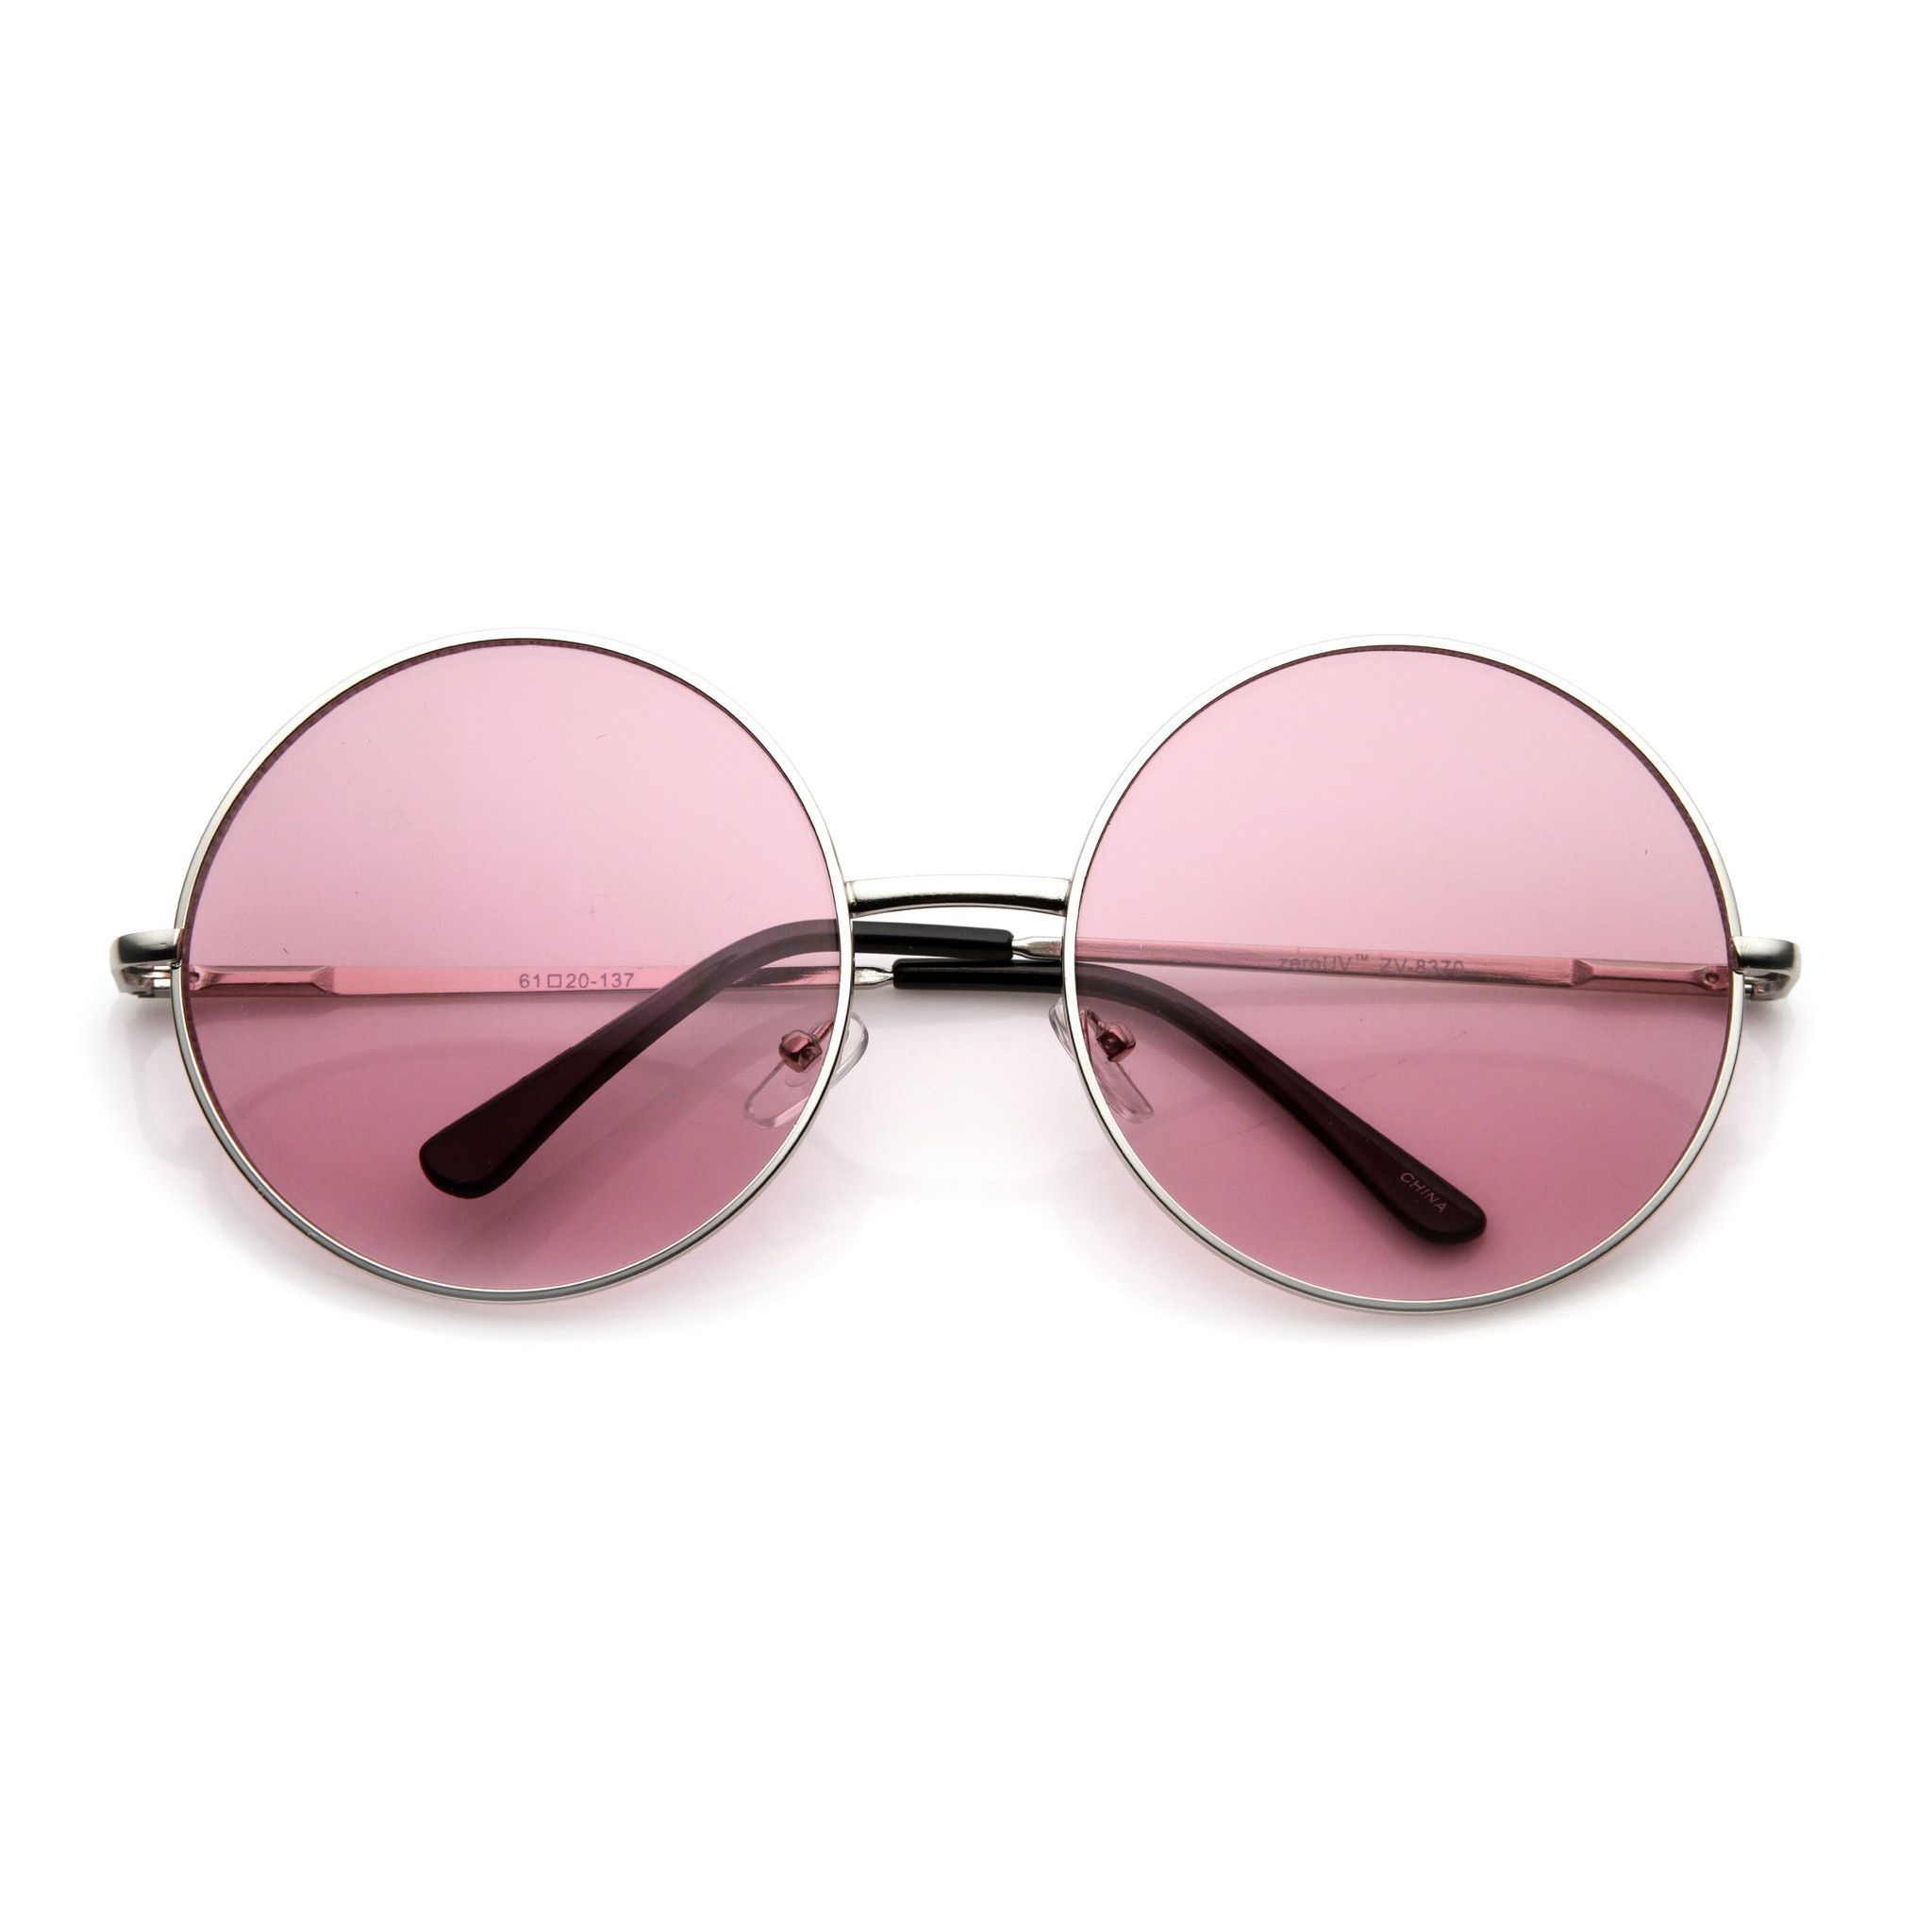 8b8b71a310 Oversize Vintage Inspired Metal Round Circle Sunglasses 8370